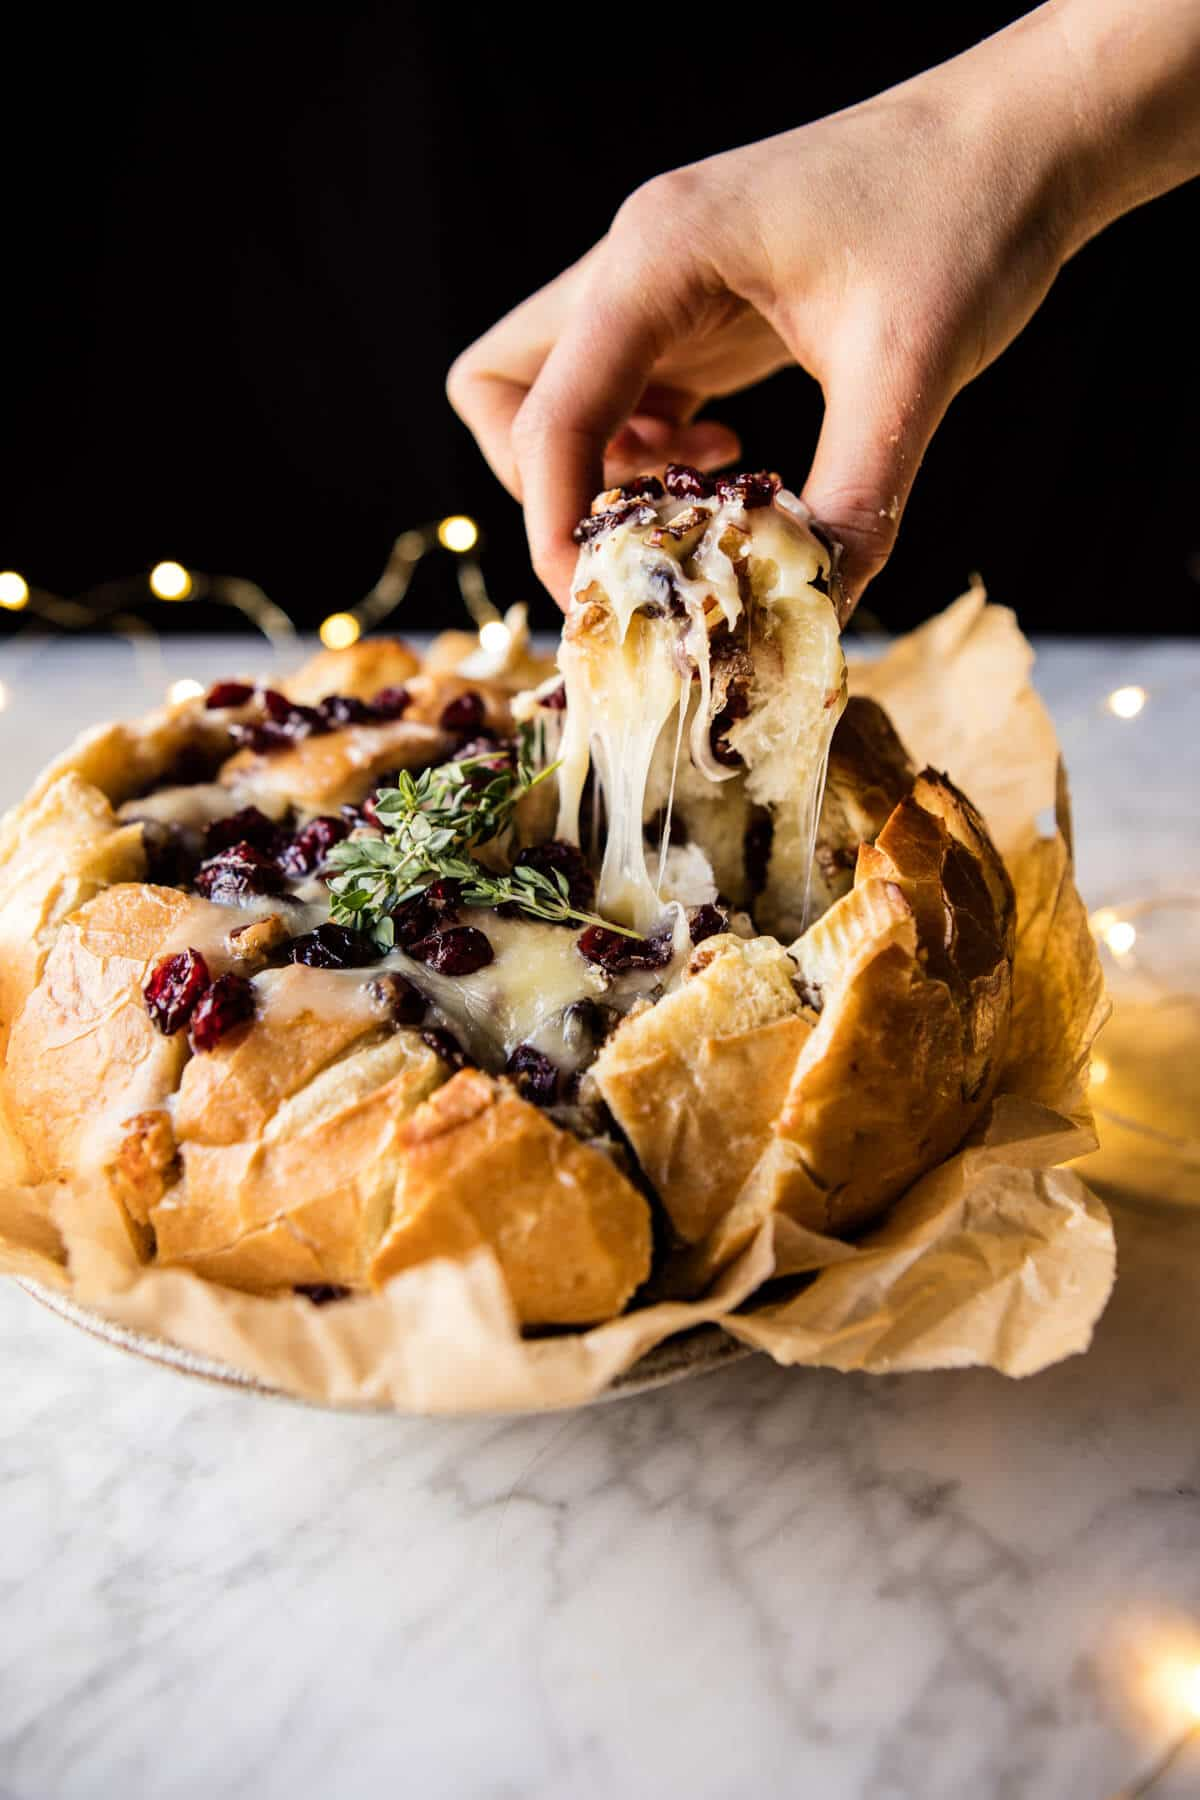 Cranberry brie pull apart bread with a hunk being pulled out.